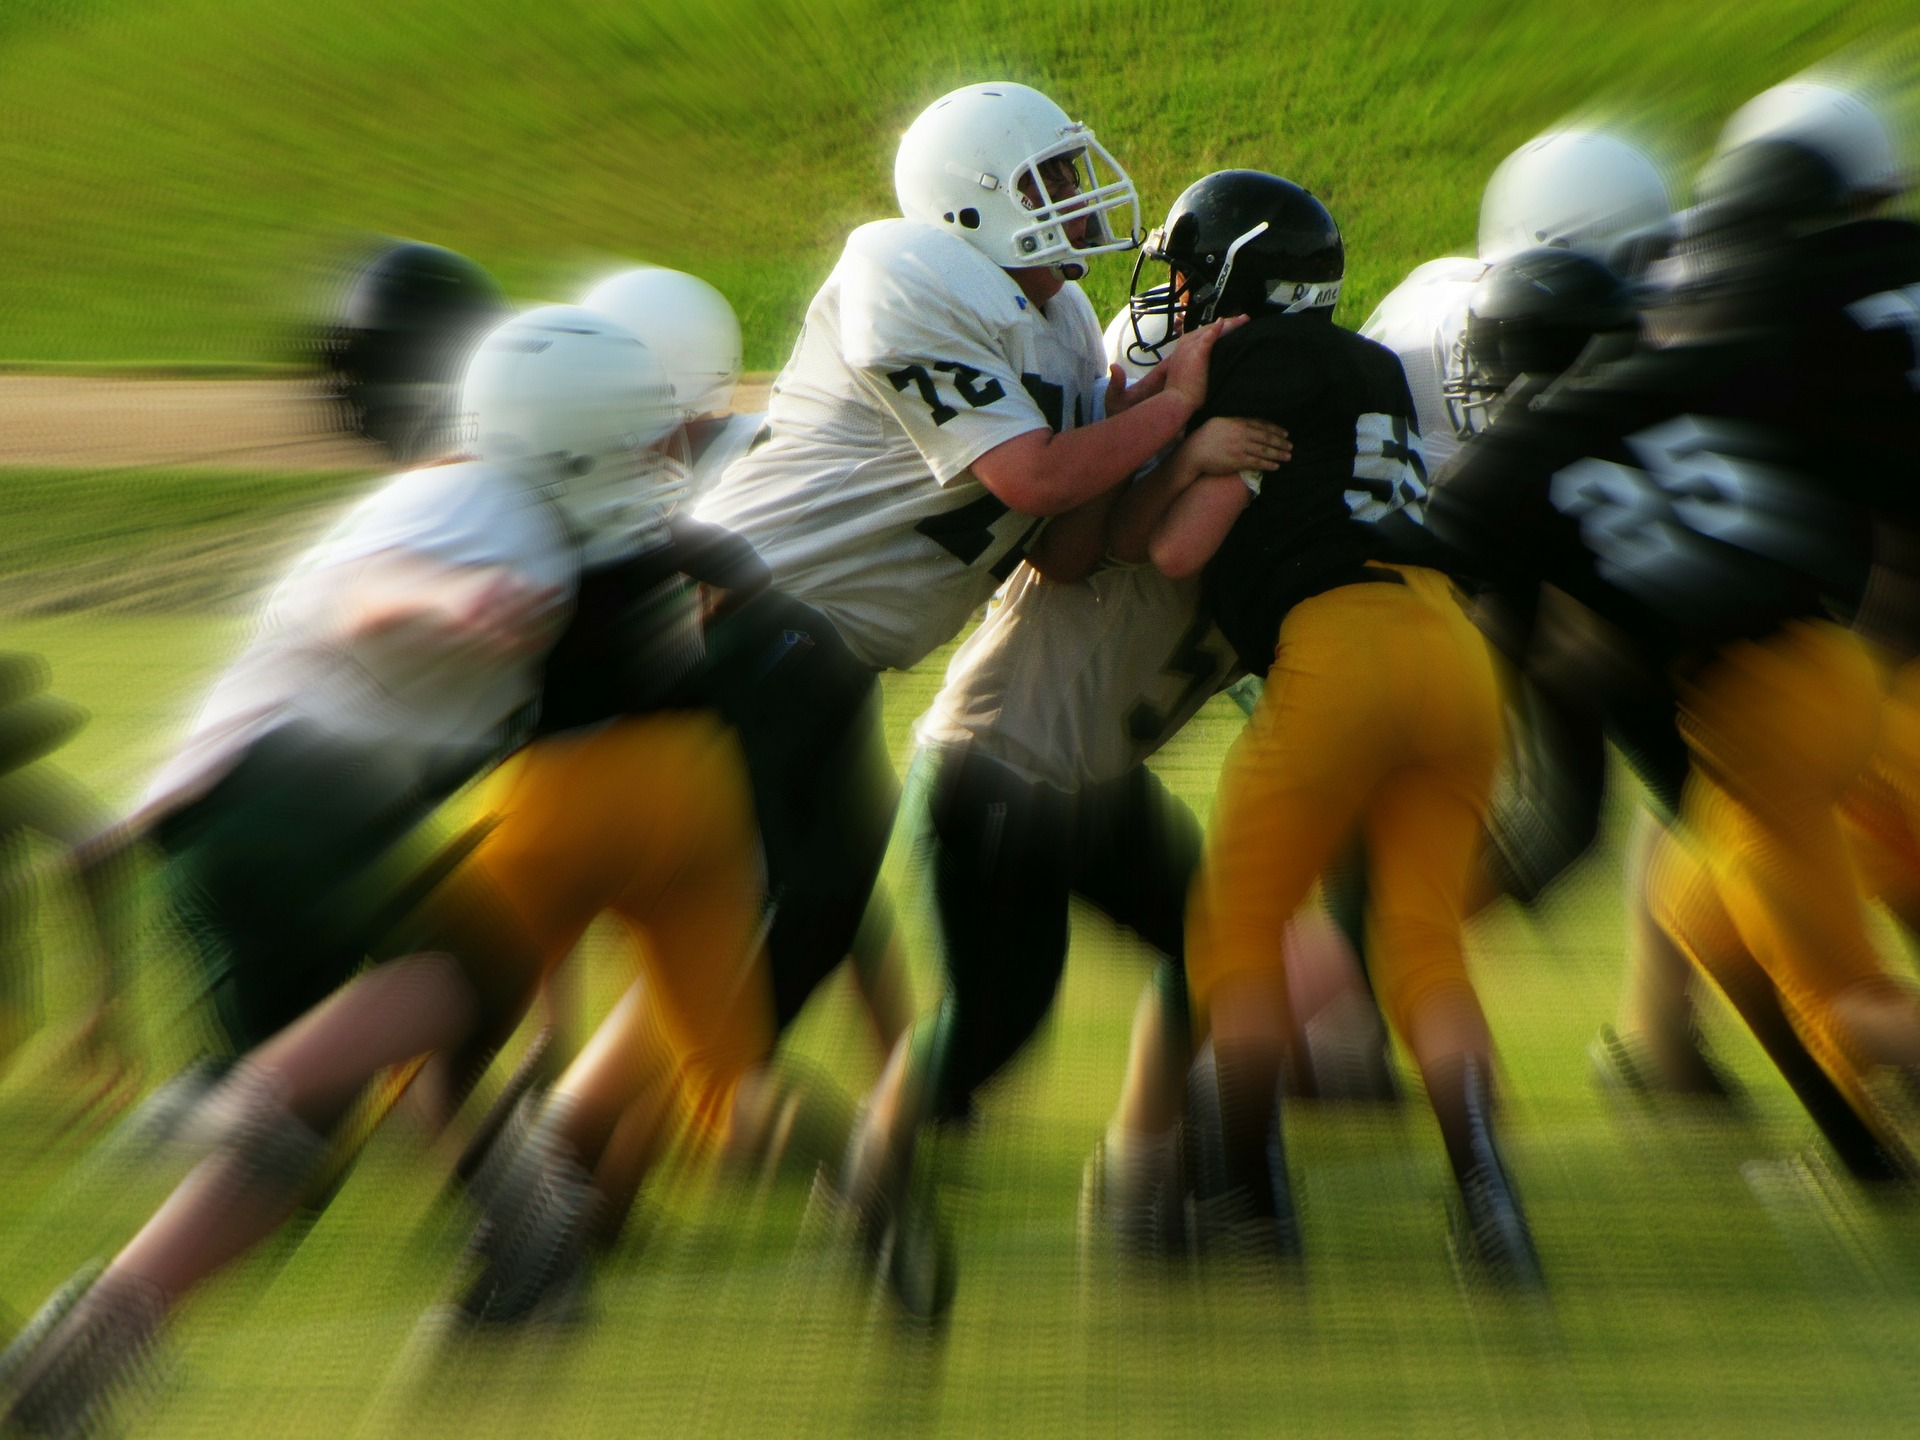 Sports-Related Accident Traumatic Injuries in Delaware